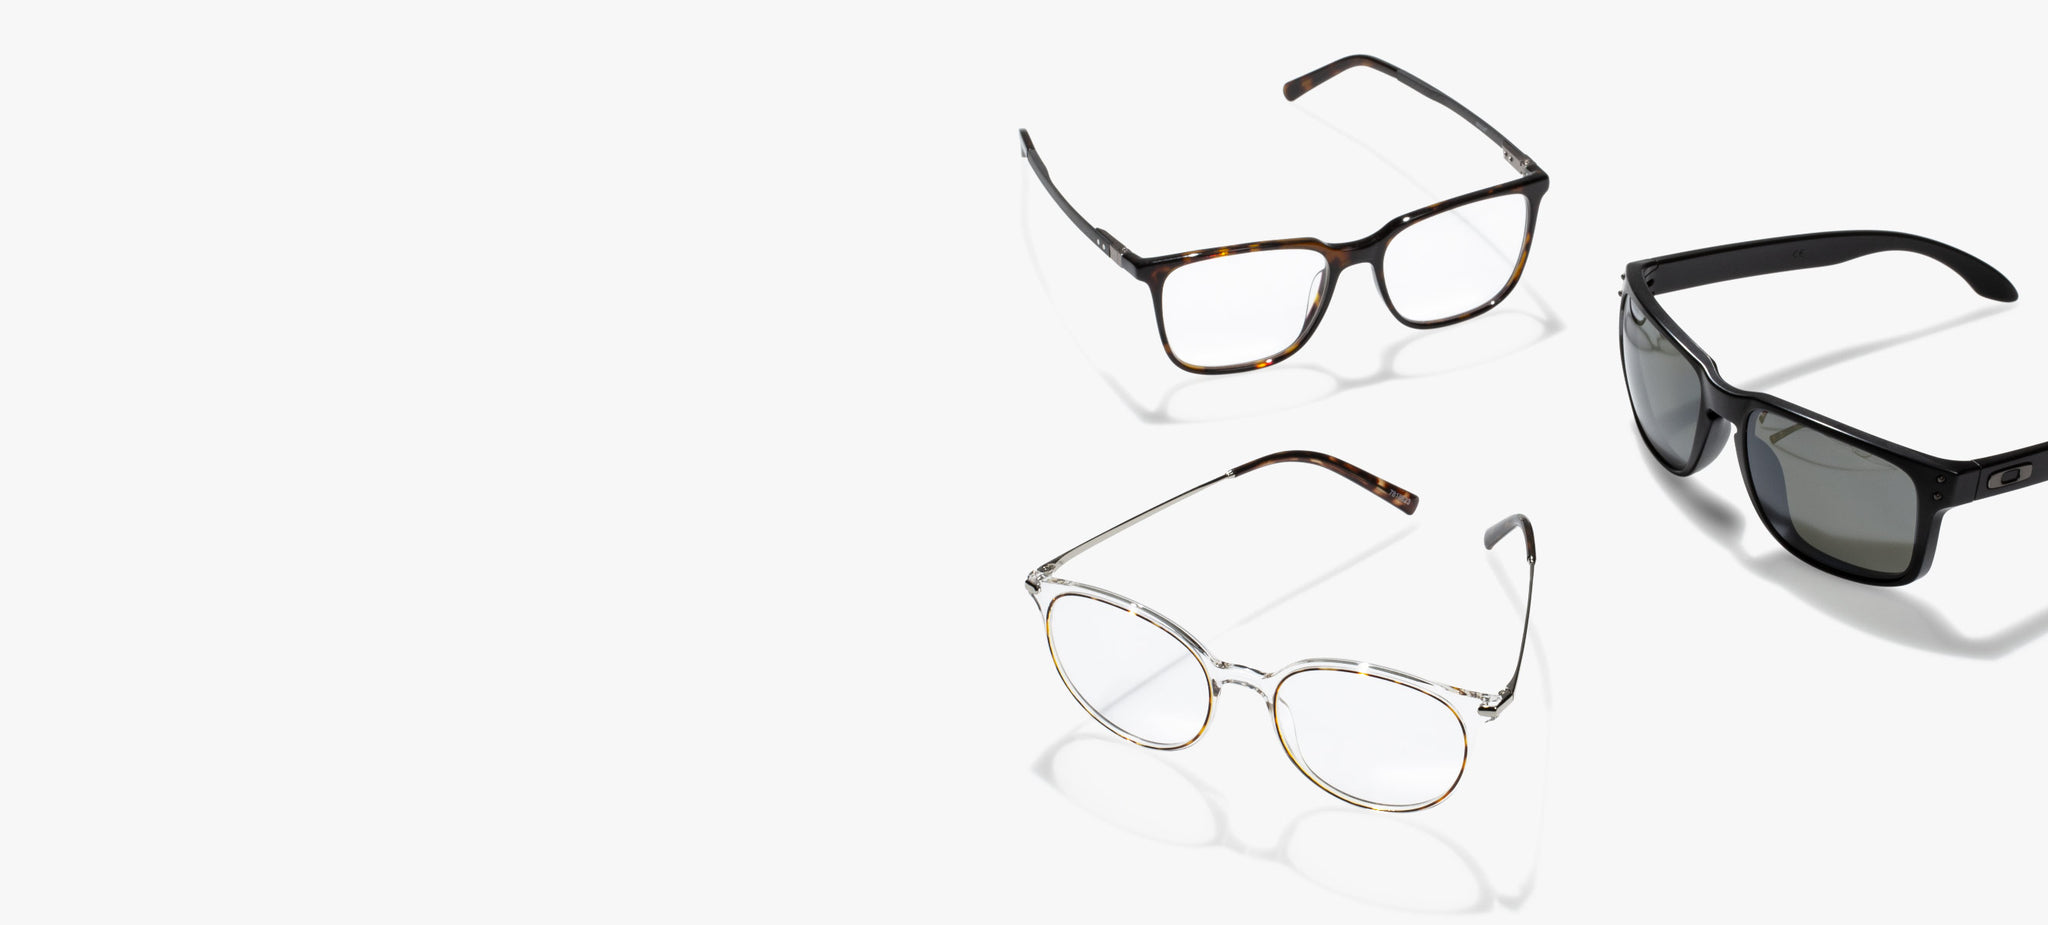 Three glasses with Revant prescription lenses